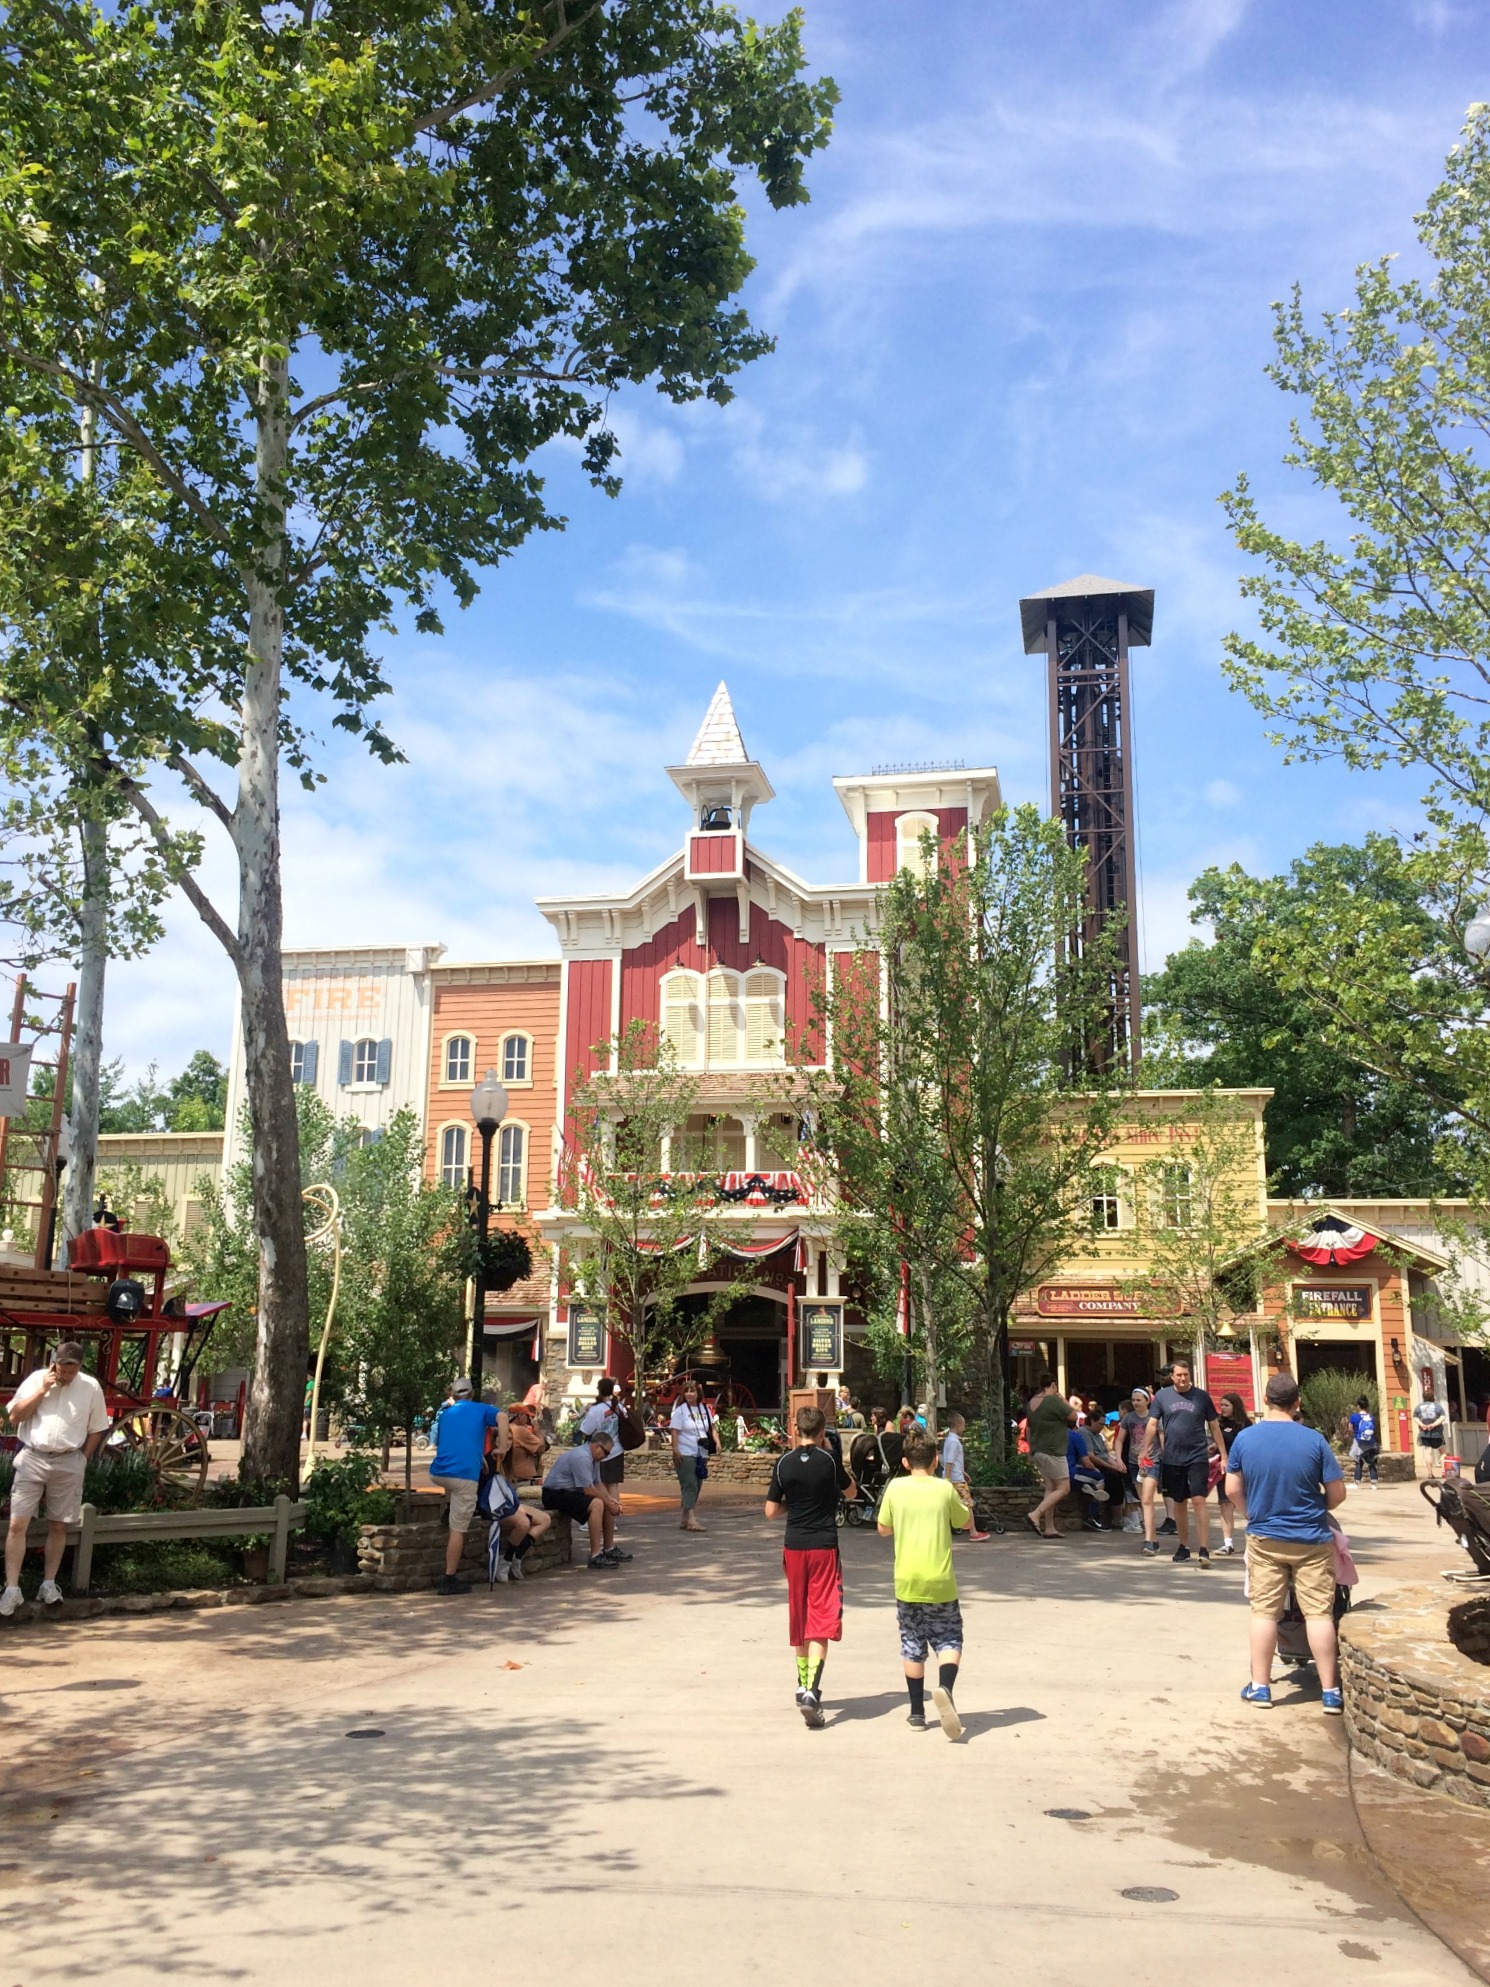 Silver Dollar City theme park Branson, Missouri